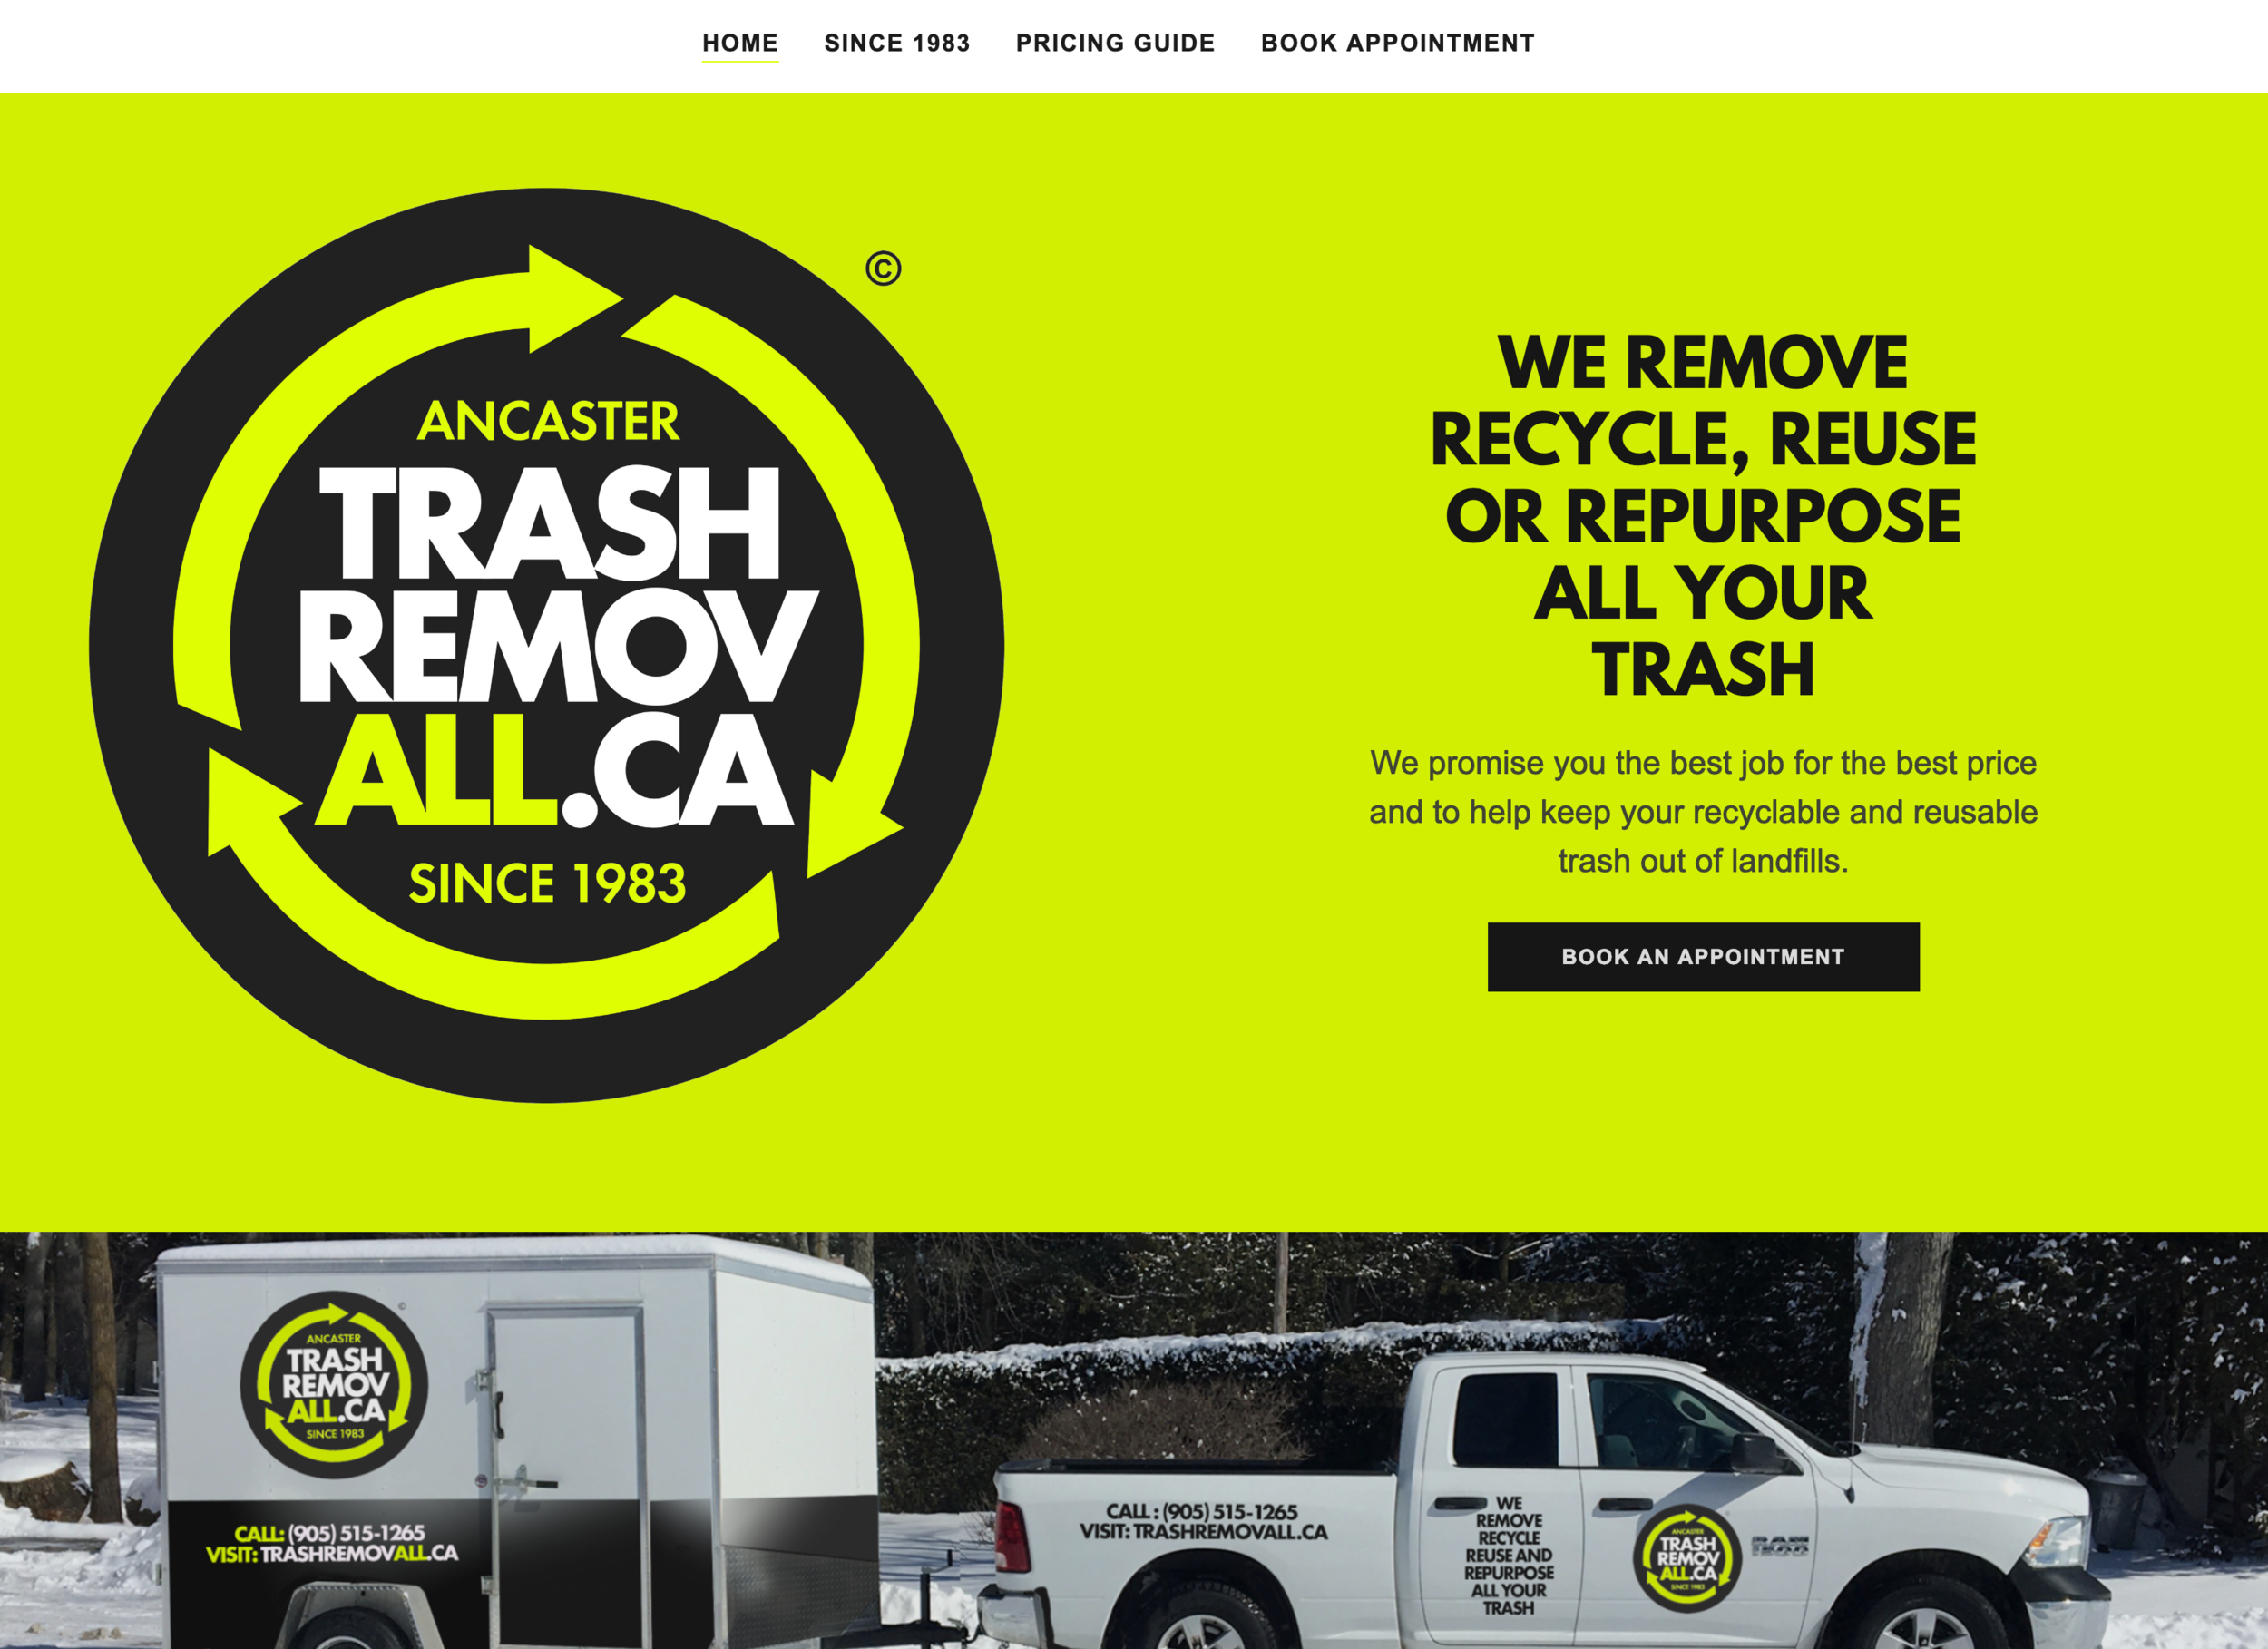 Ancaster Trash RemovALL